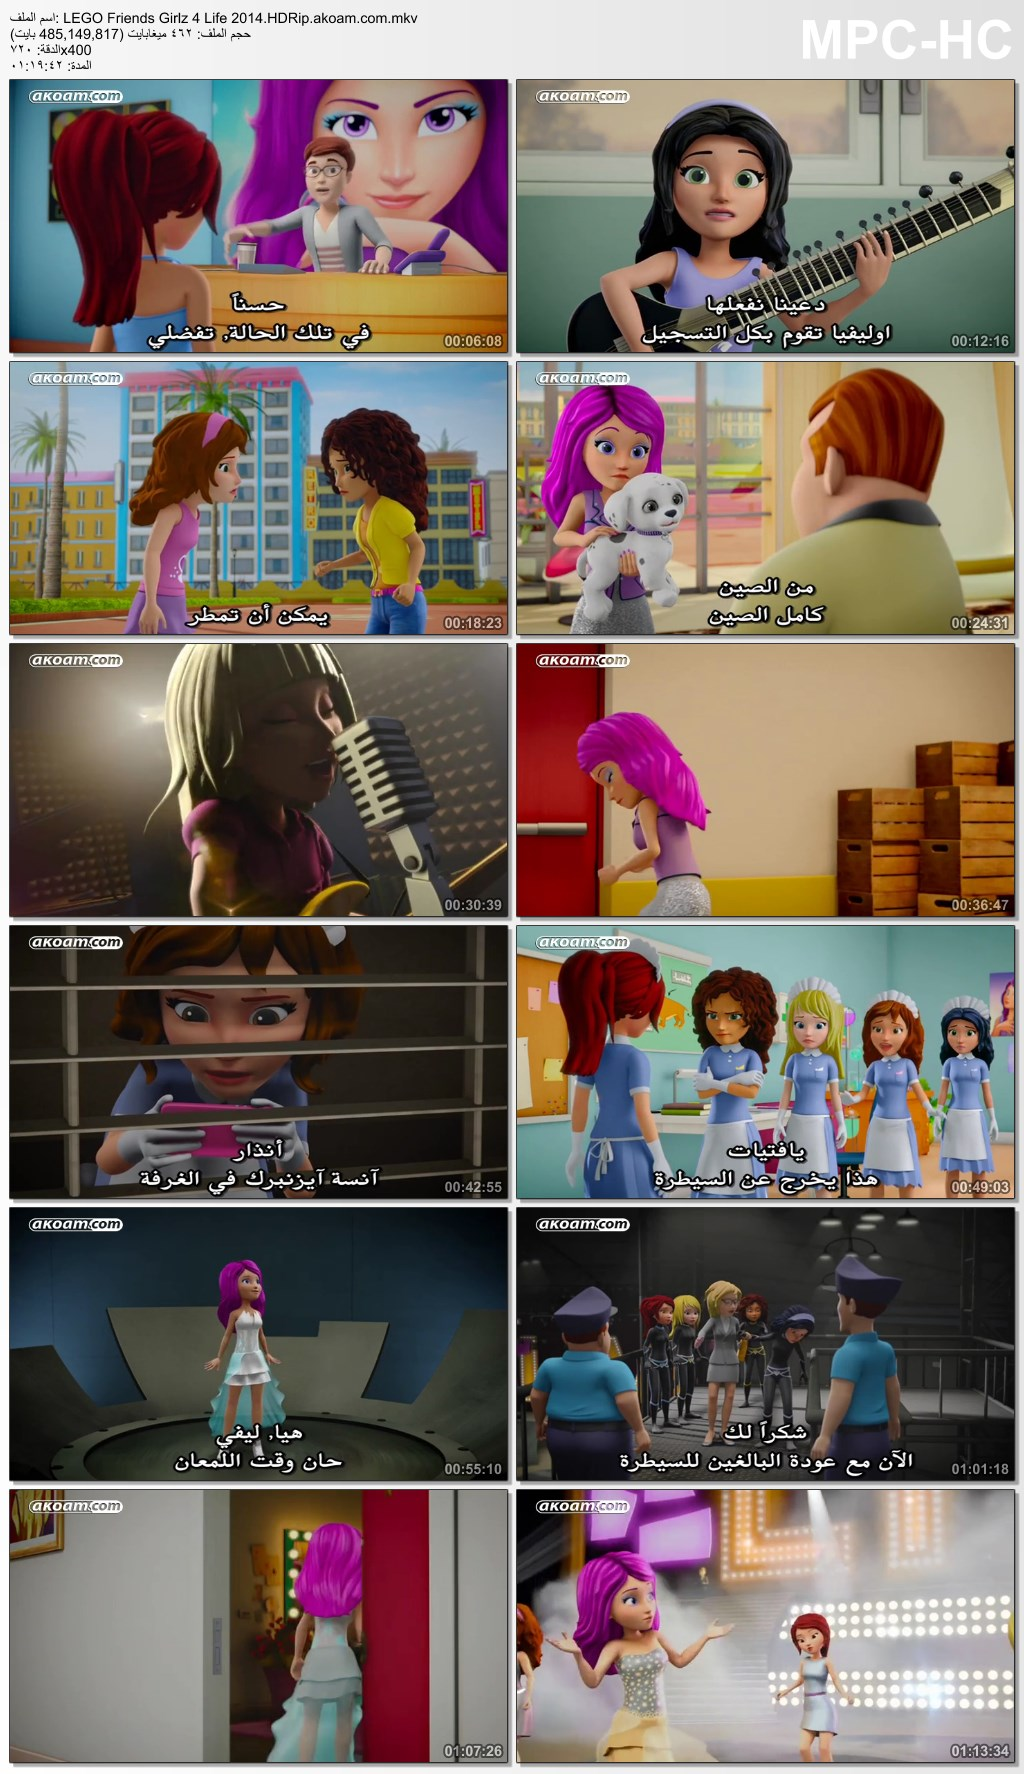 LEGO Friends: Girlz 4 Life,LEGO Friends: Girlz 4 Life 2014,الانمي,الانيميشن